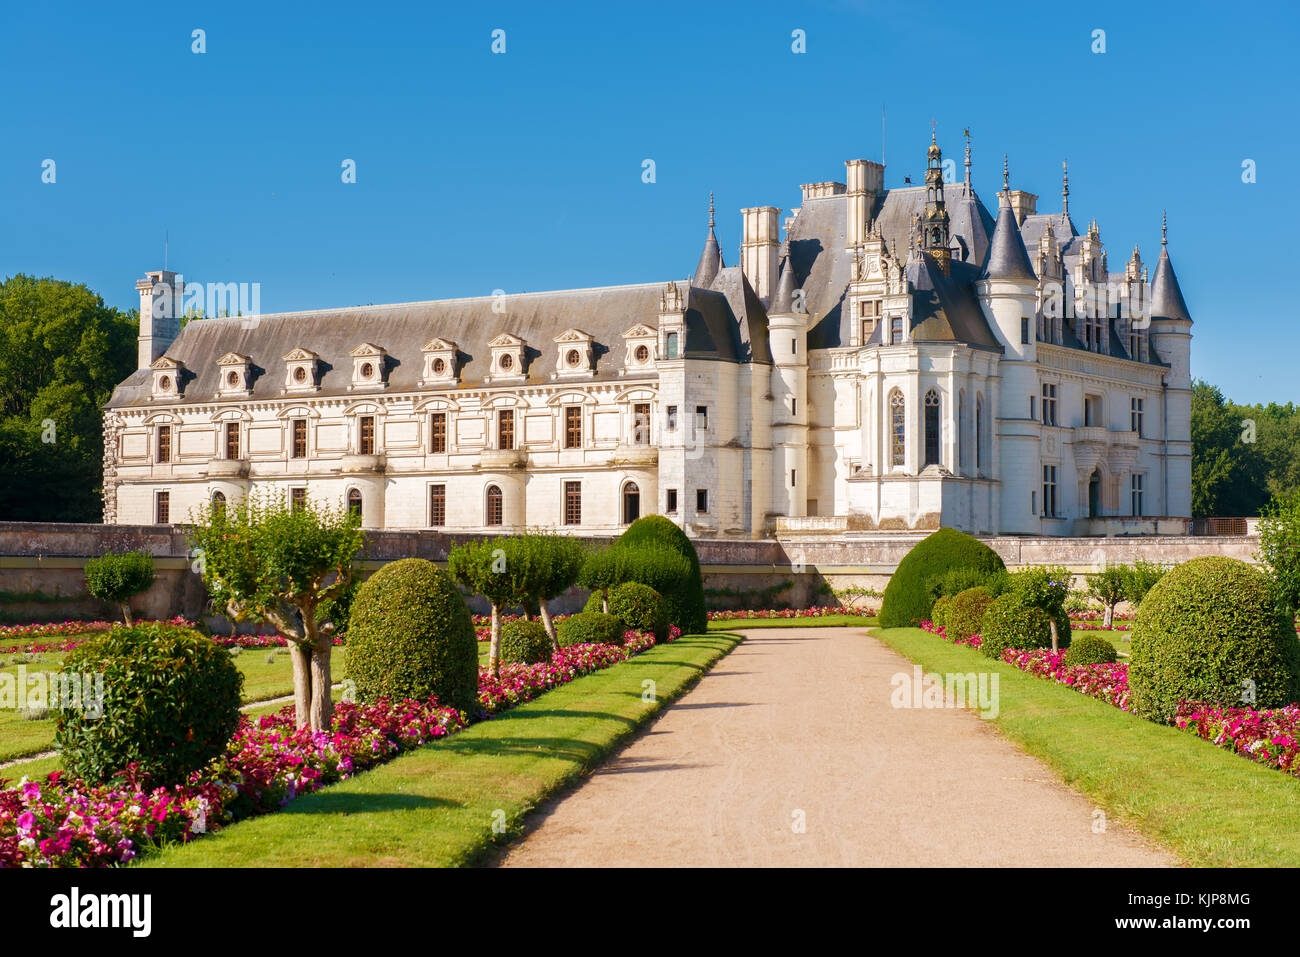 Chenonceau chateau, built over the Cher river , Loire Valley,France,on gradient blue  sky background. - Stock Image